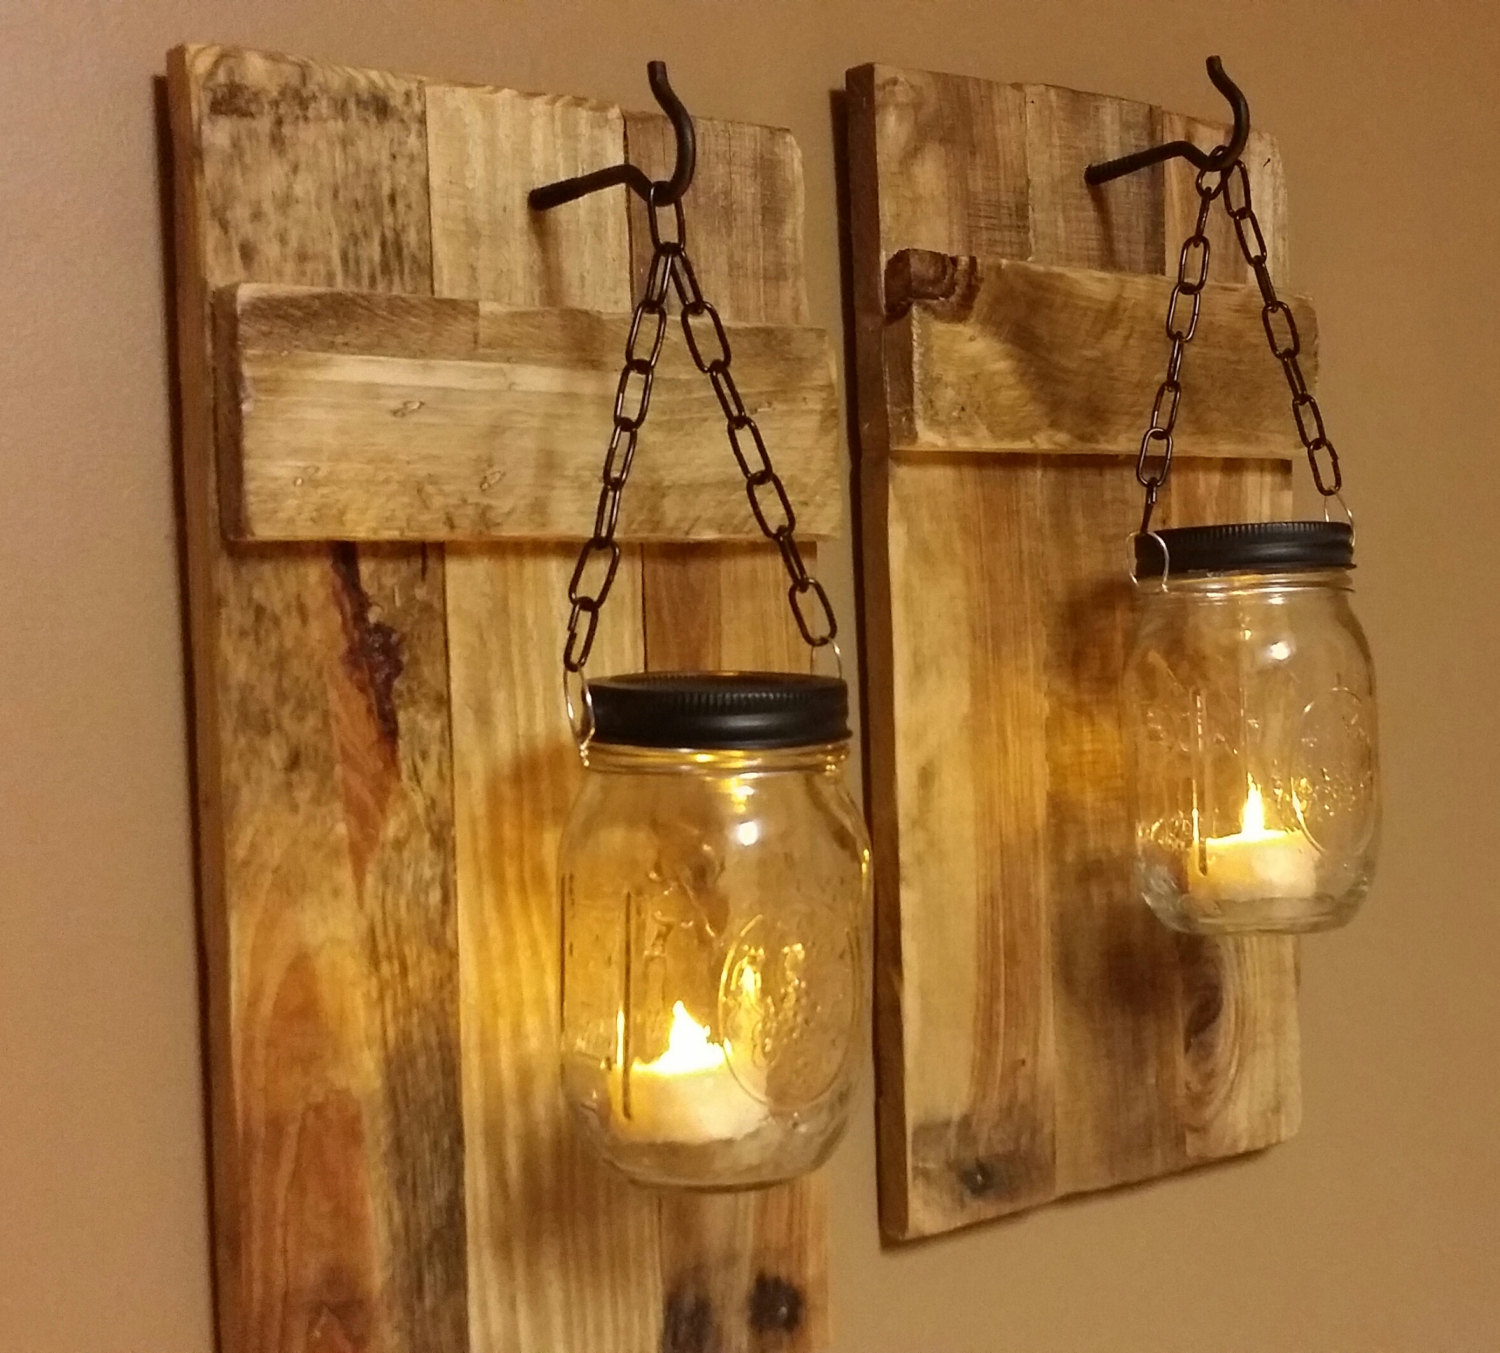 Diy Mason Jar Sconce Making Tutorial Crafts